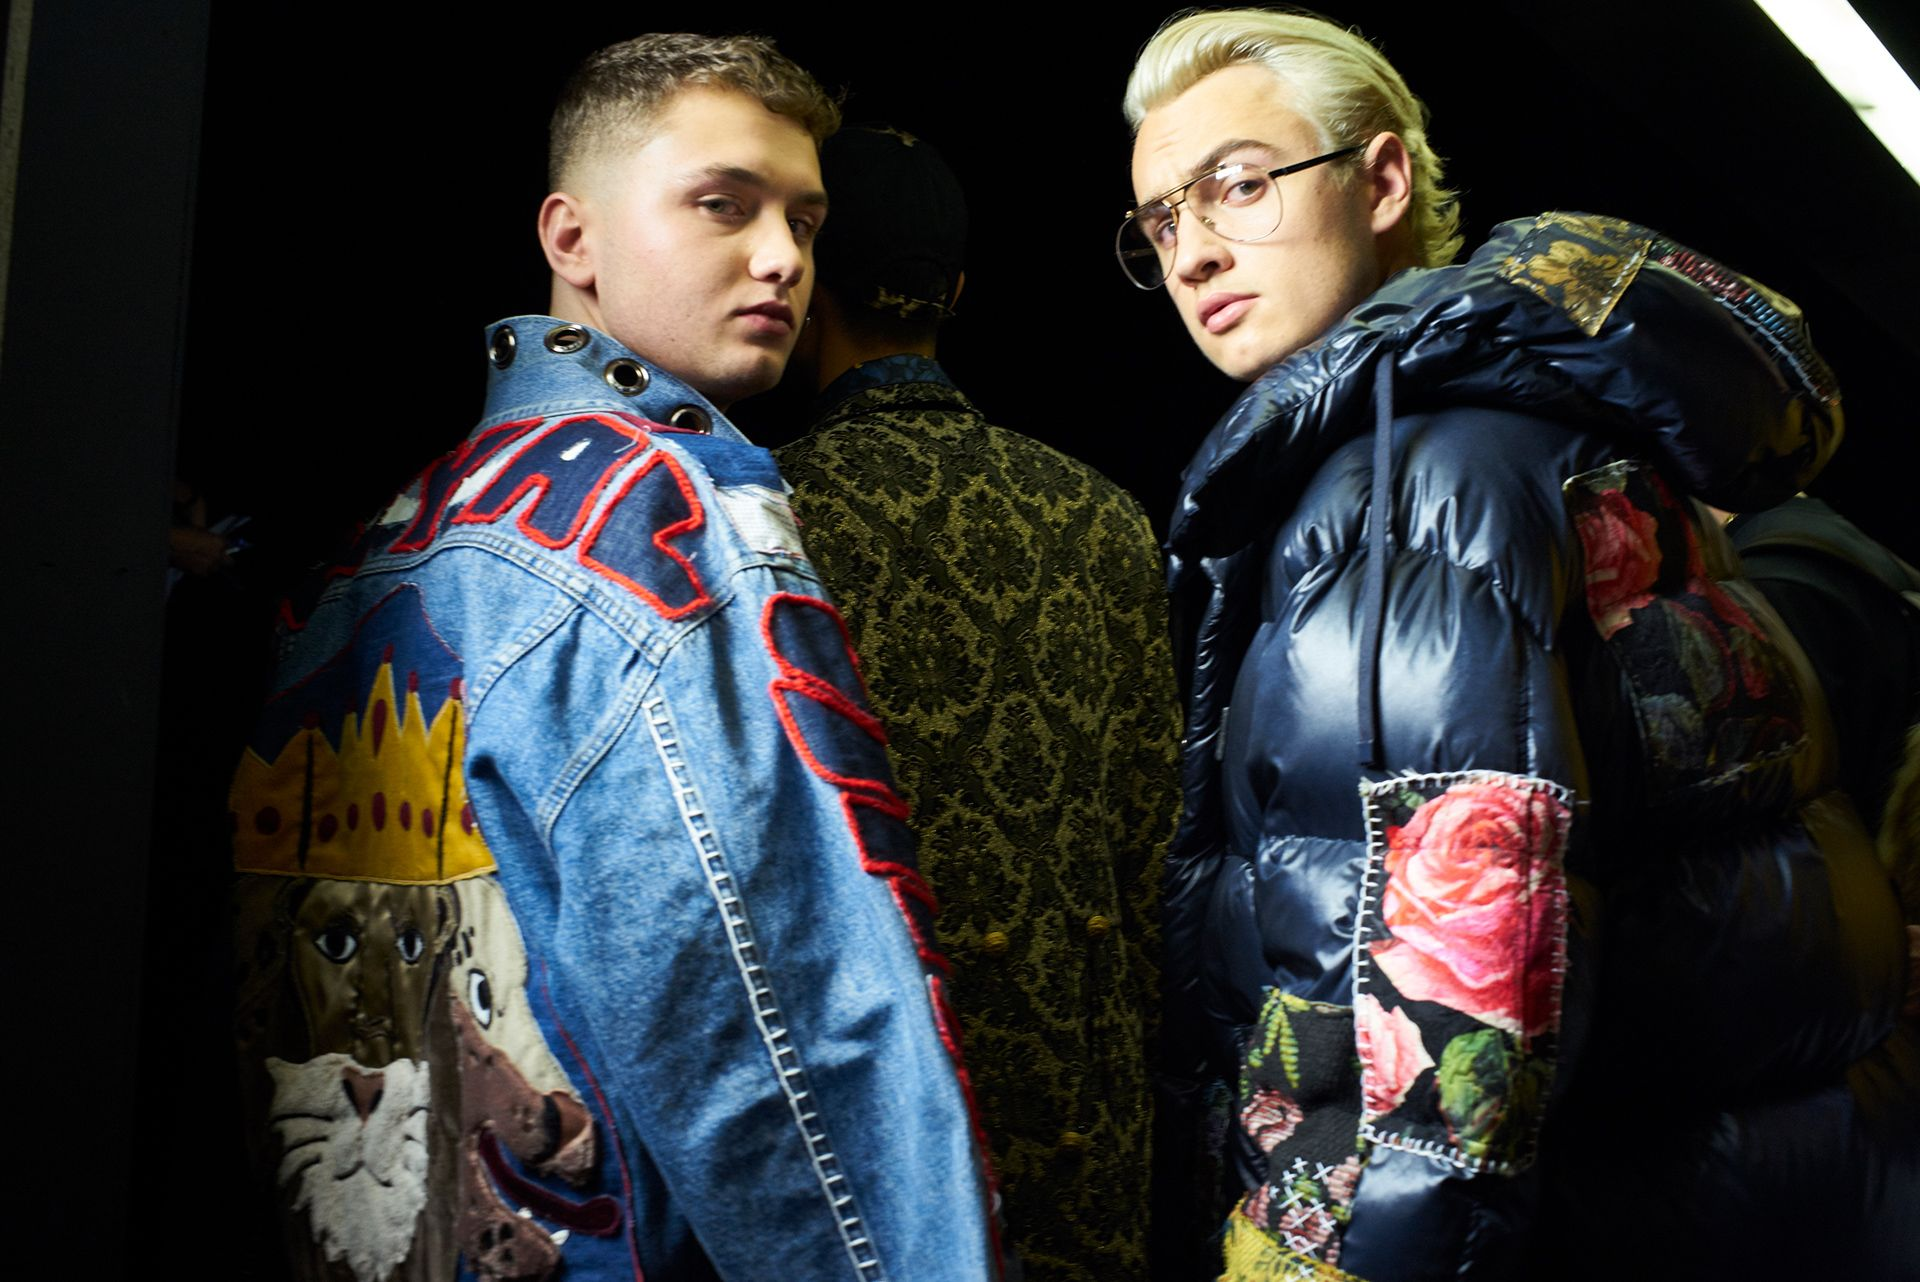 Videos and Pictures from Dolce&Gabbana Fall Winter 2017-18 Menswear Fashion Show Backstage on Dolcegabbana.com.